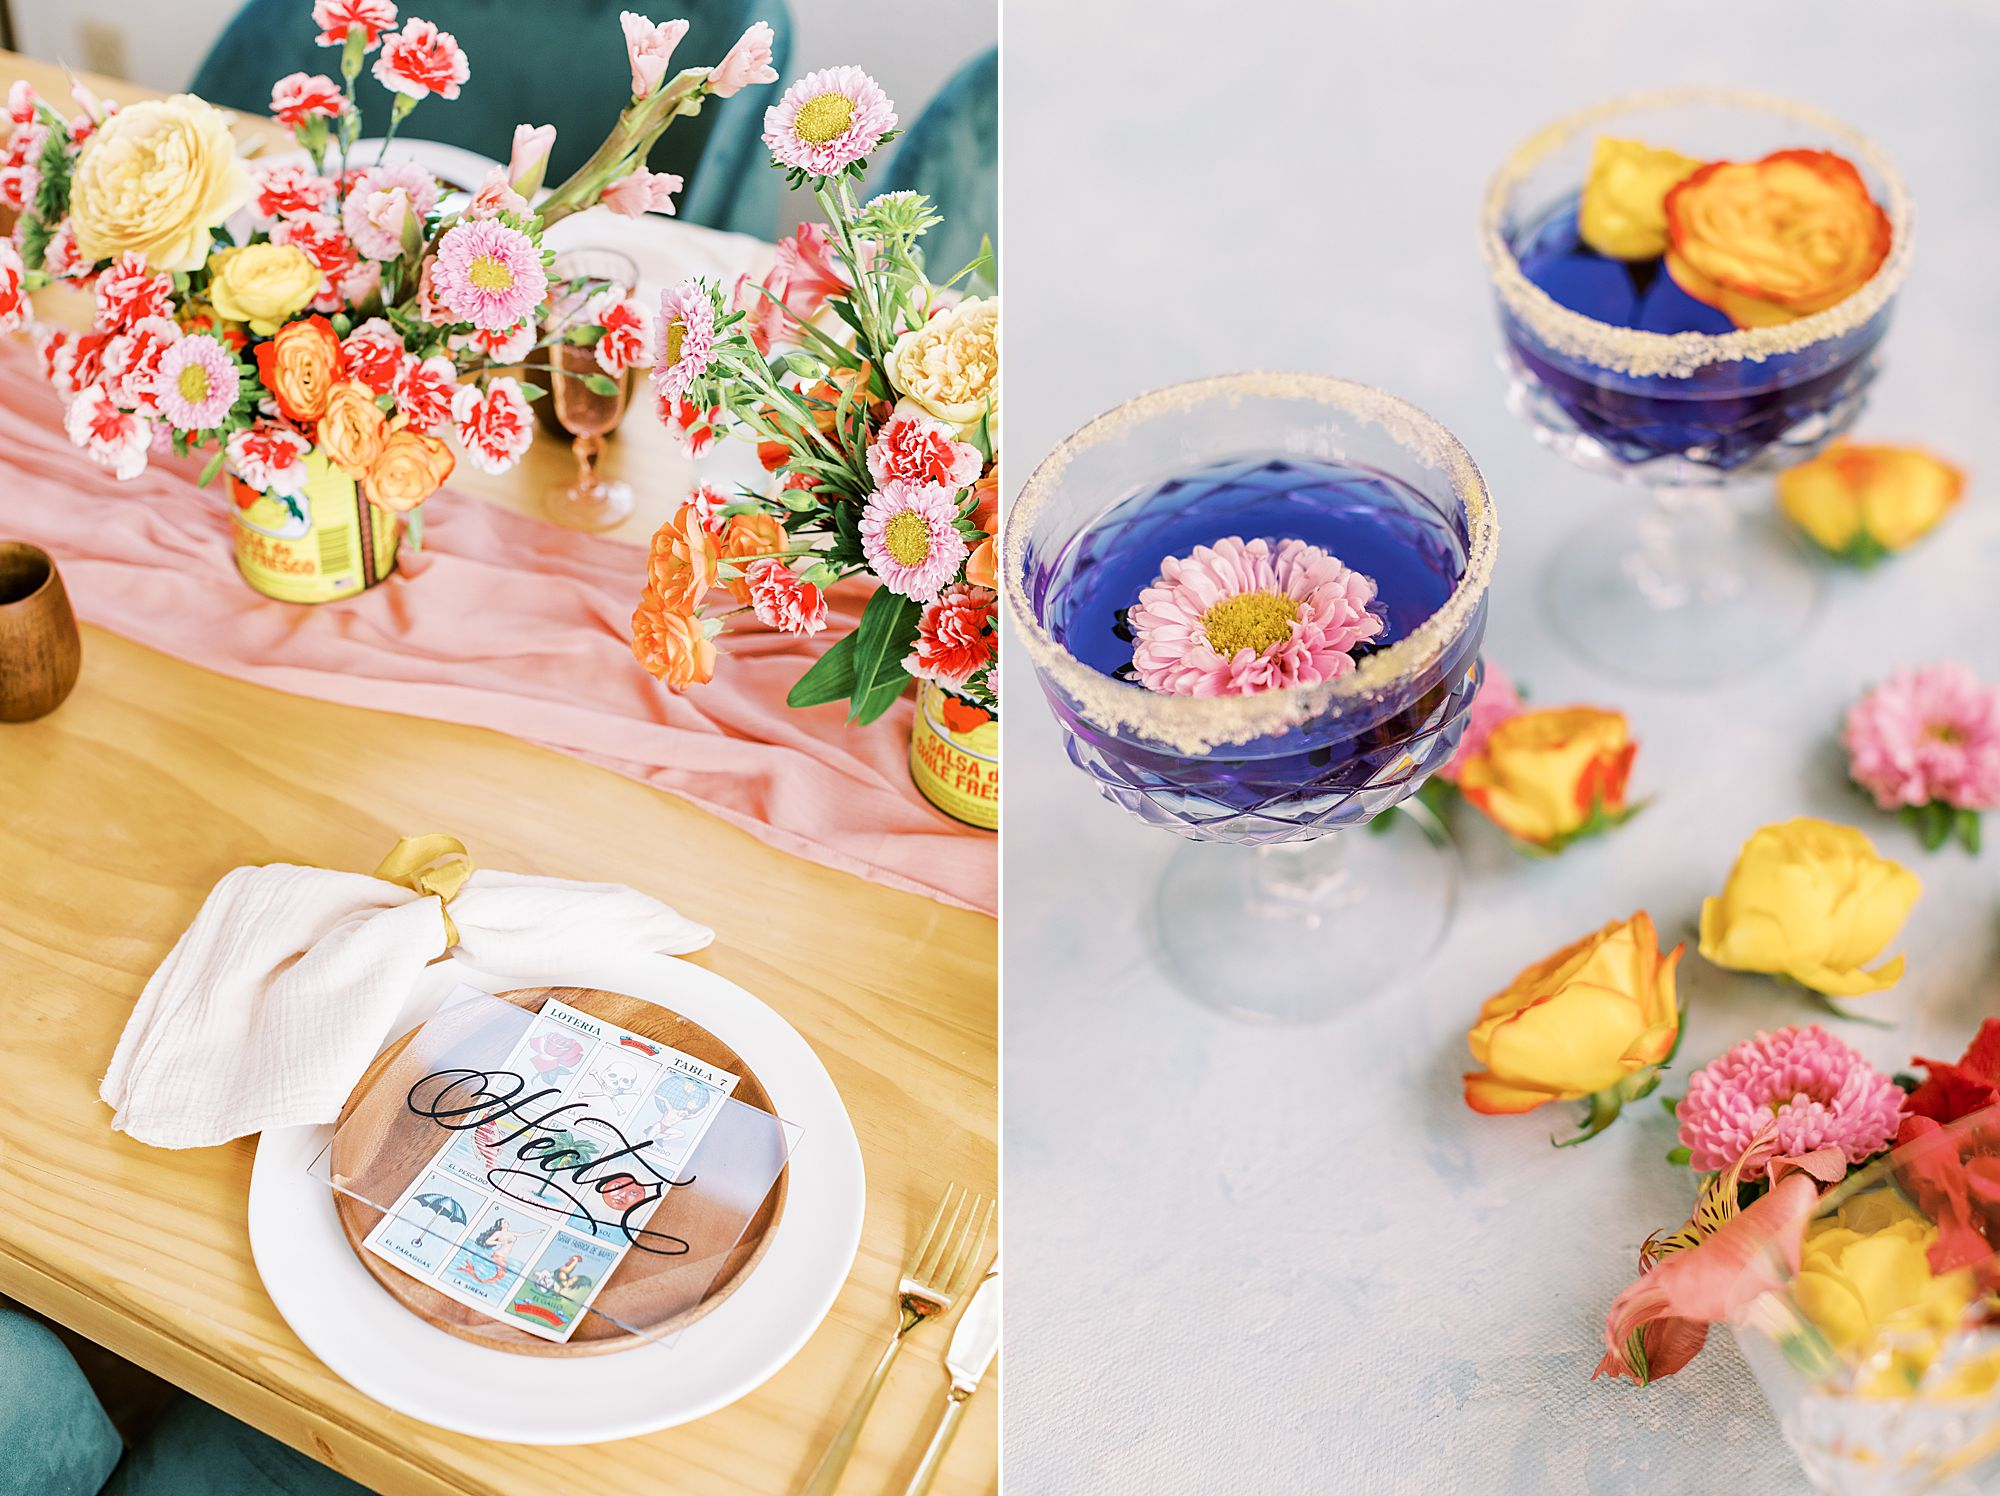 Cinco De Mayo Inspiration for Your FIesta - Party Crush Studio and Ashley Baumgartner_0006.jpg